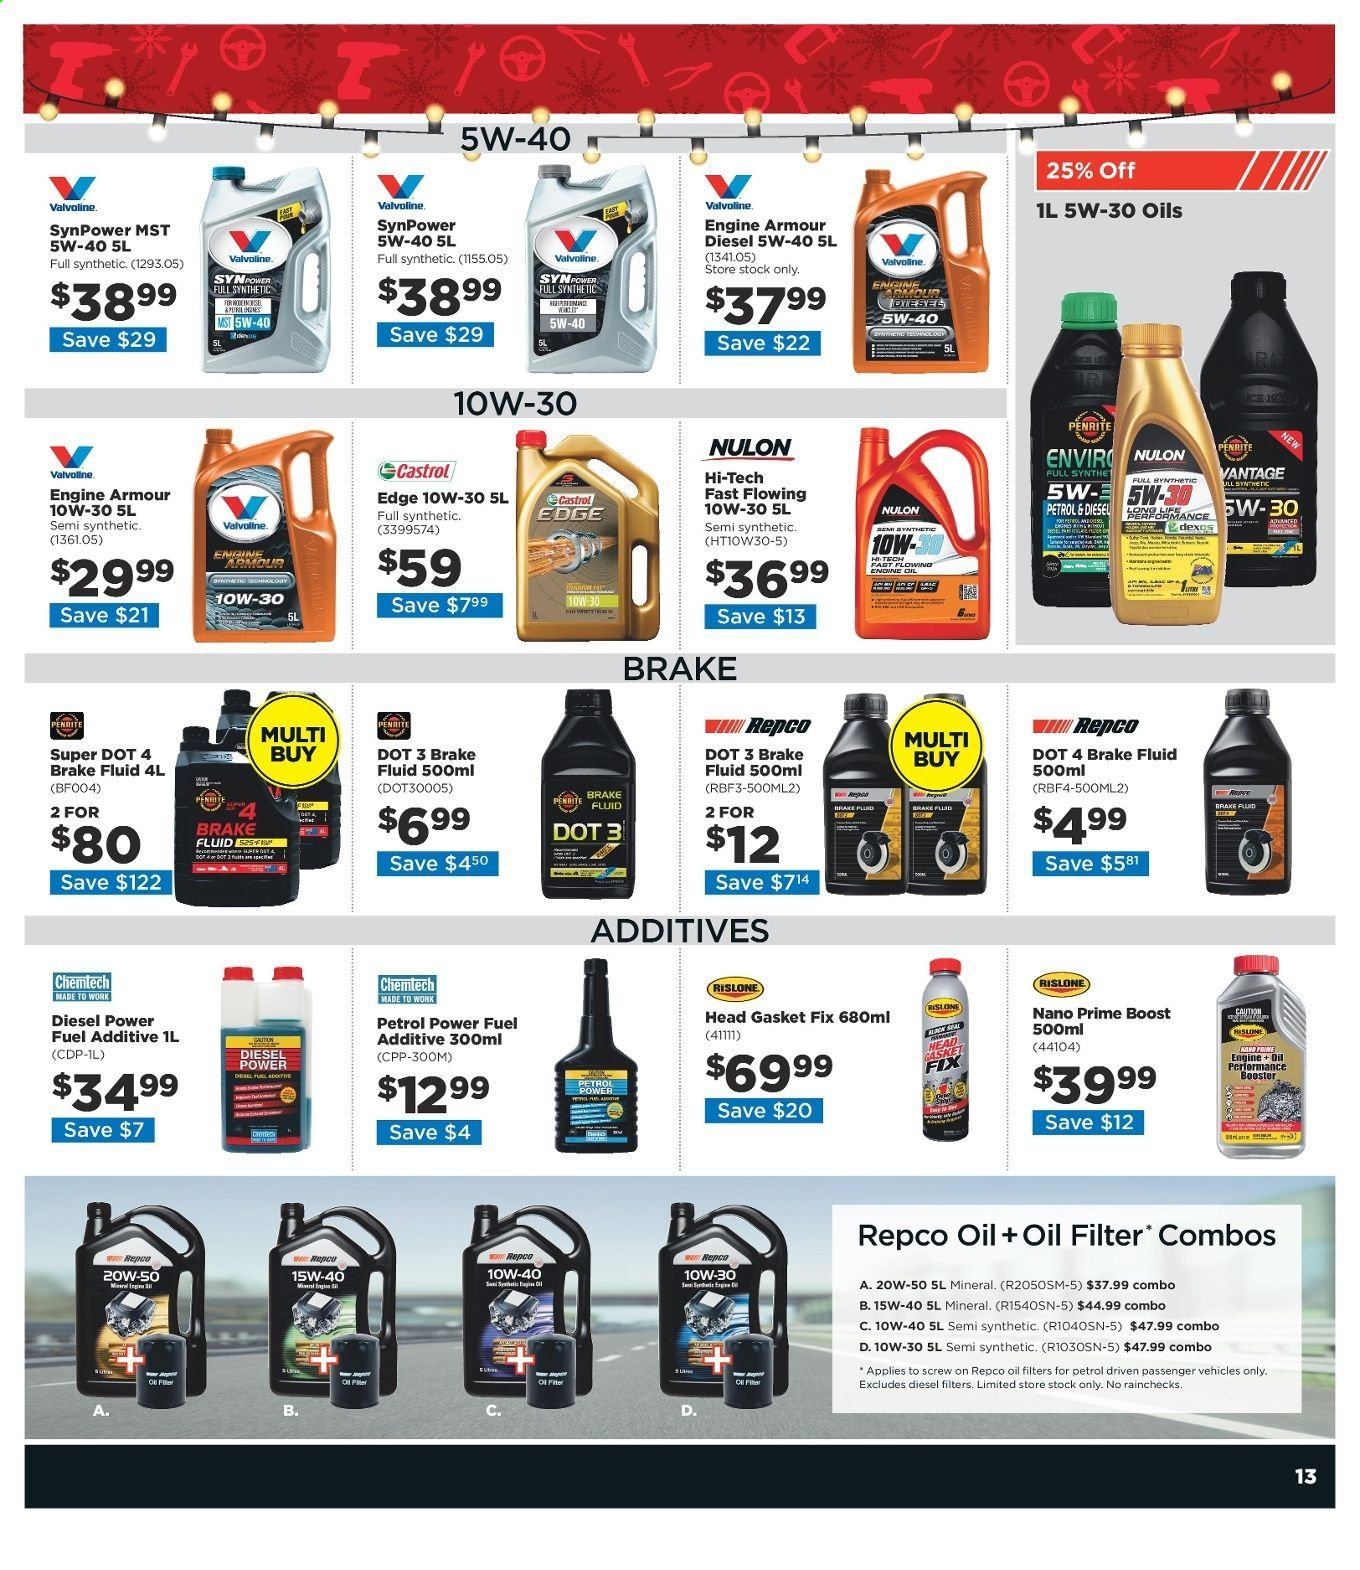 Repco catalogue  - 16.12.2019 - 22.12.2019. Page 13.